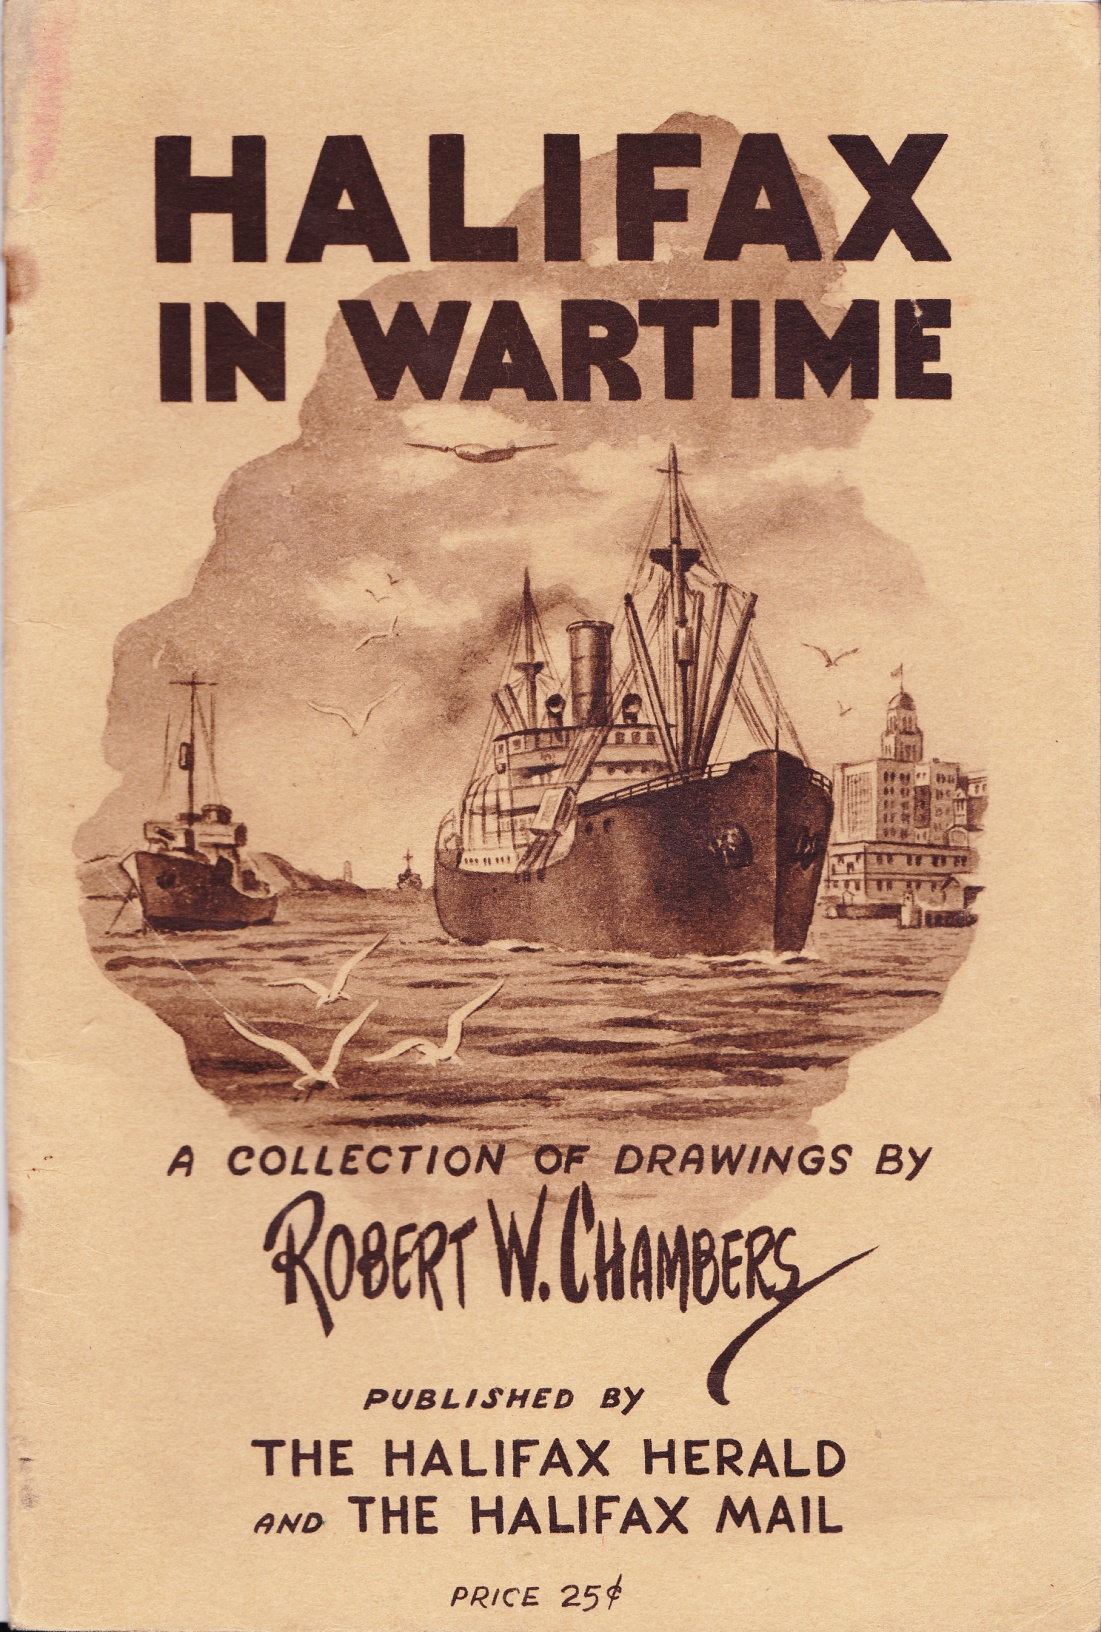 C:\Users\Robert\Documents\CARTOONING ILLUSTRATION ANIMATION\IMAGE BY CARTOONIST\C\CHAMBERS Robert, Halifax In Wartime.jpg